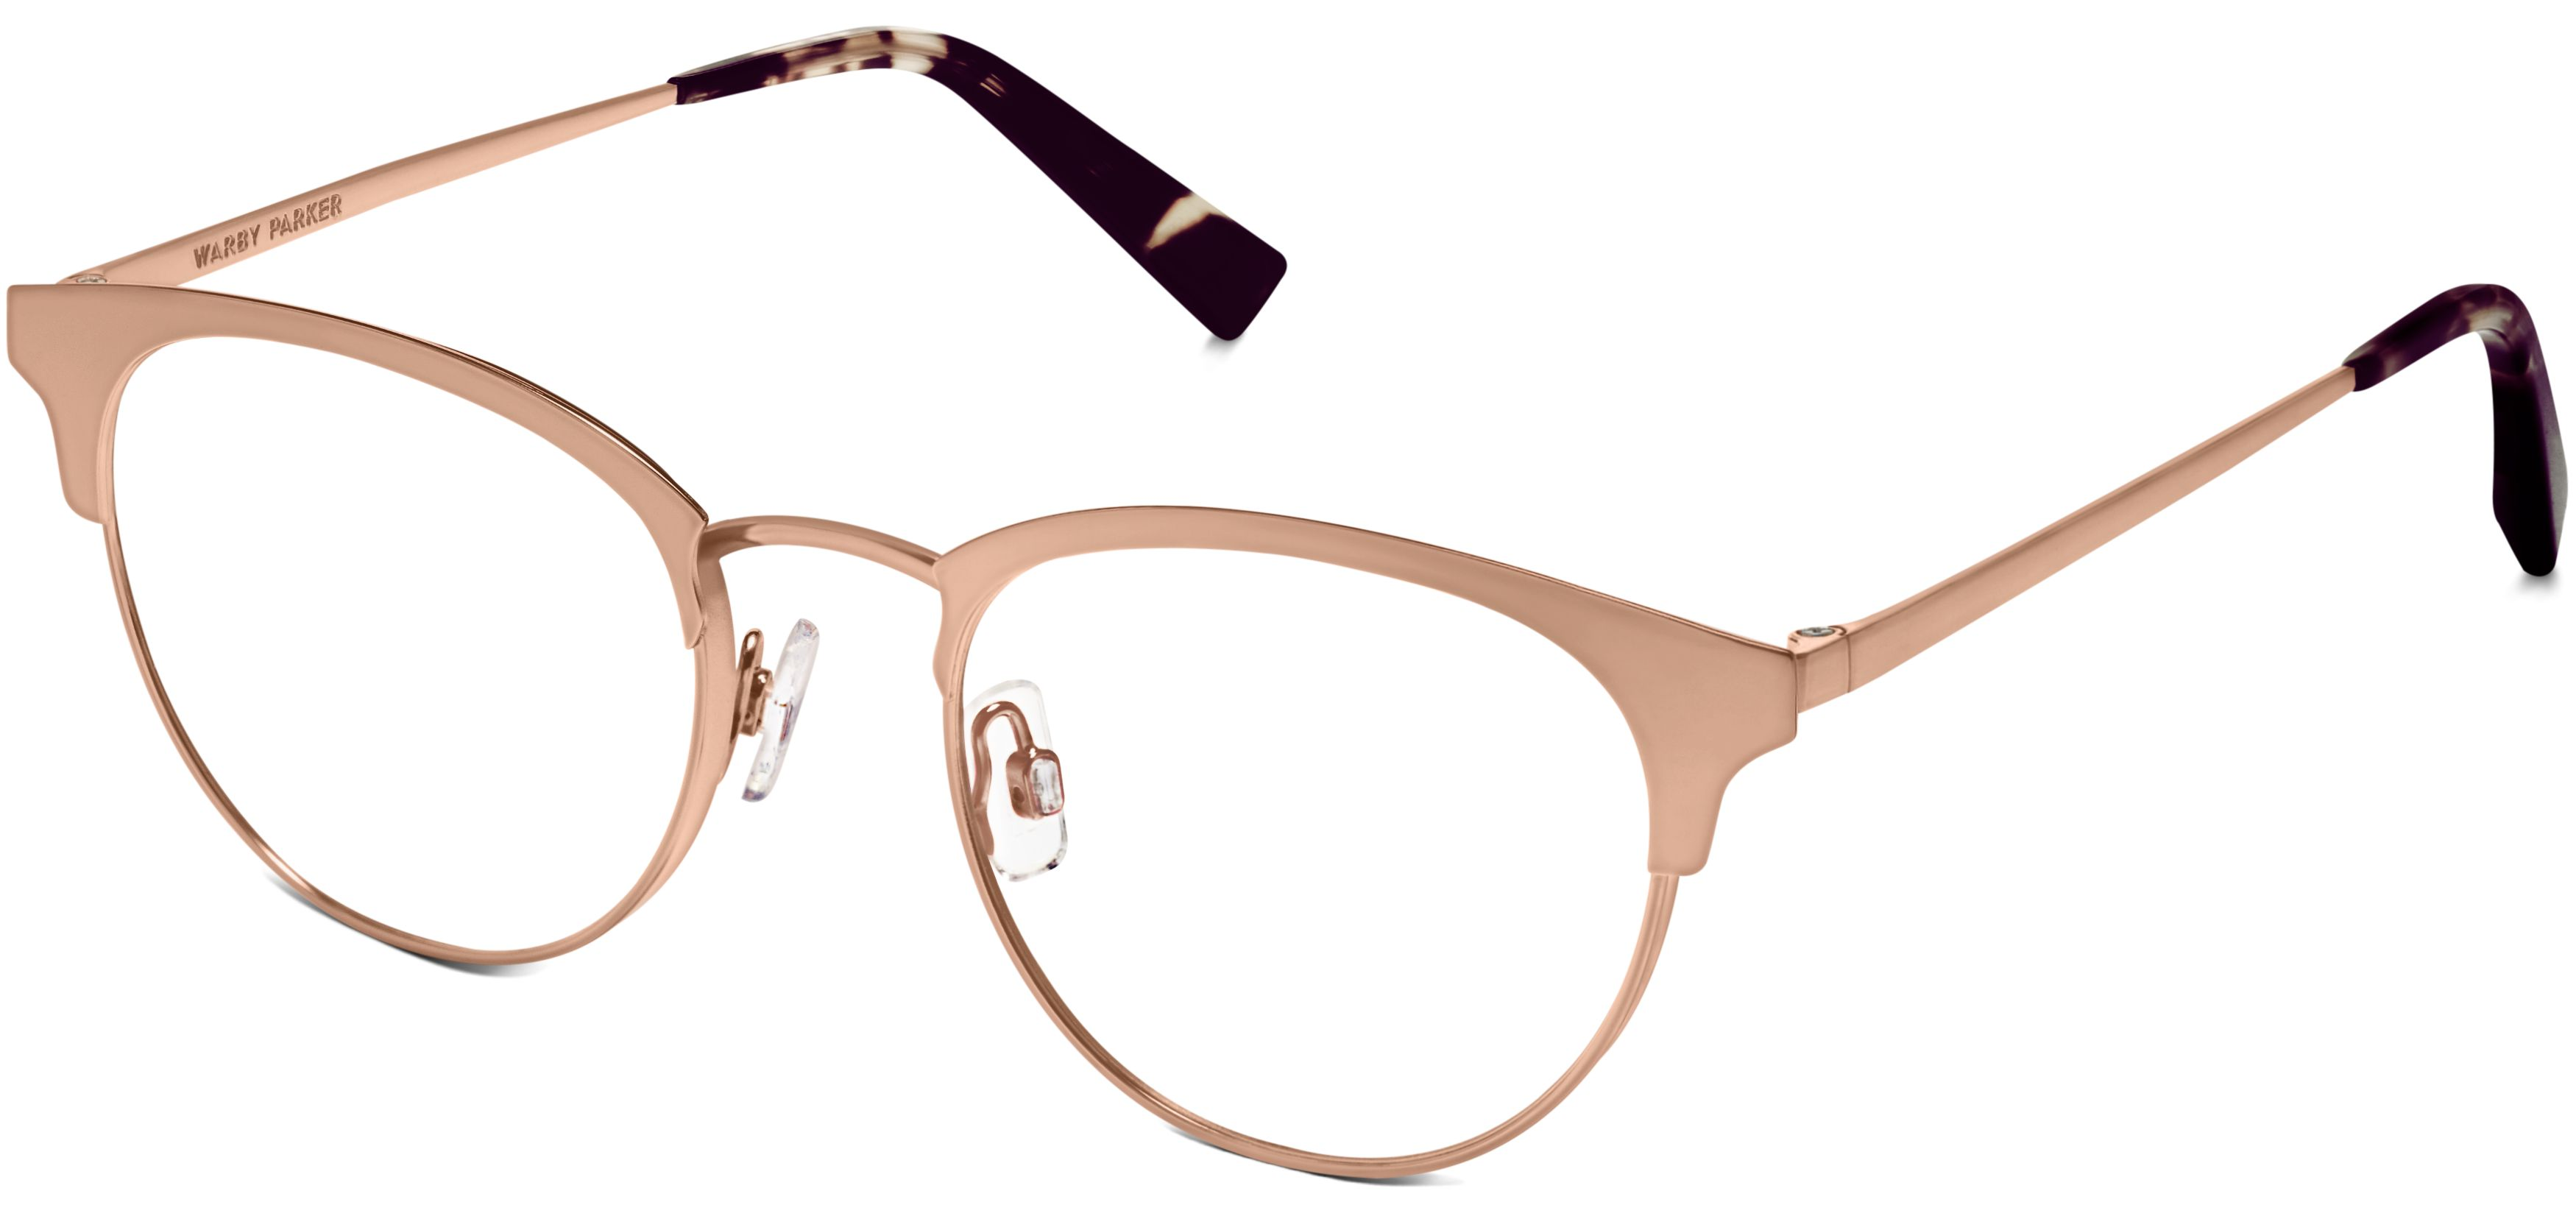 Blair Eyeglasses in Rose Gold for Women | Warby Parker